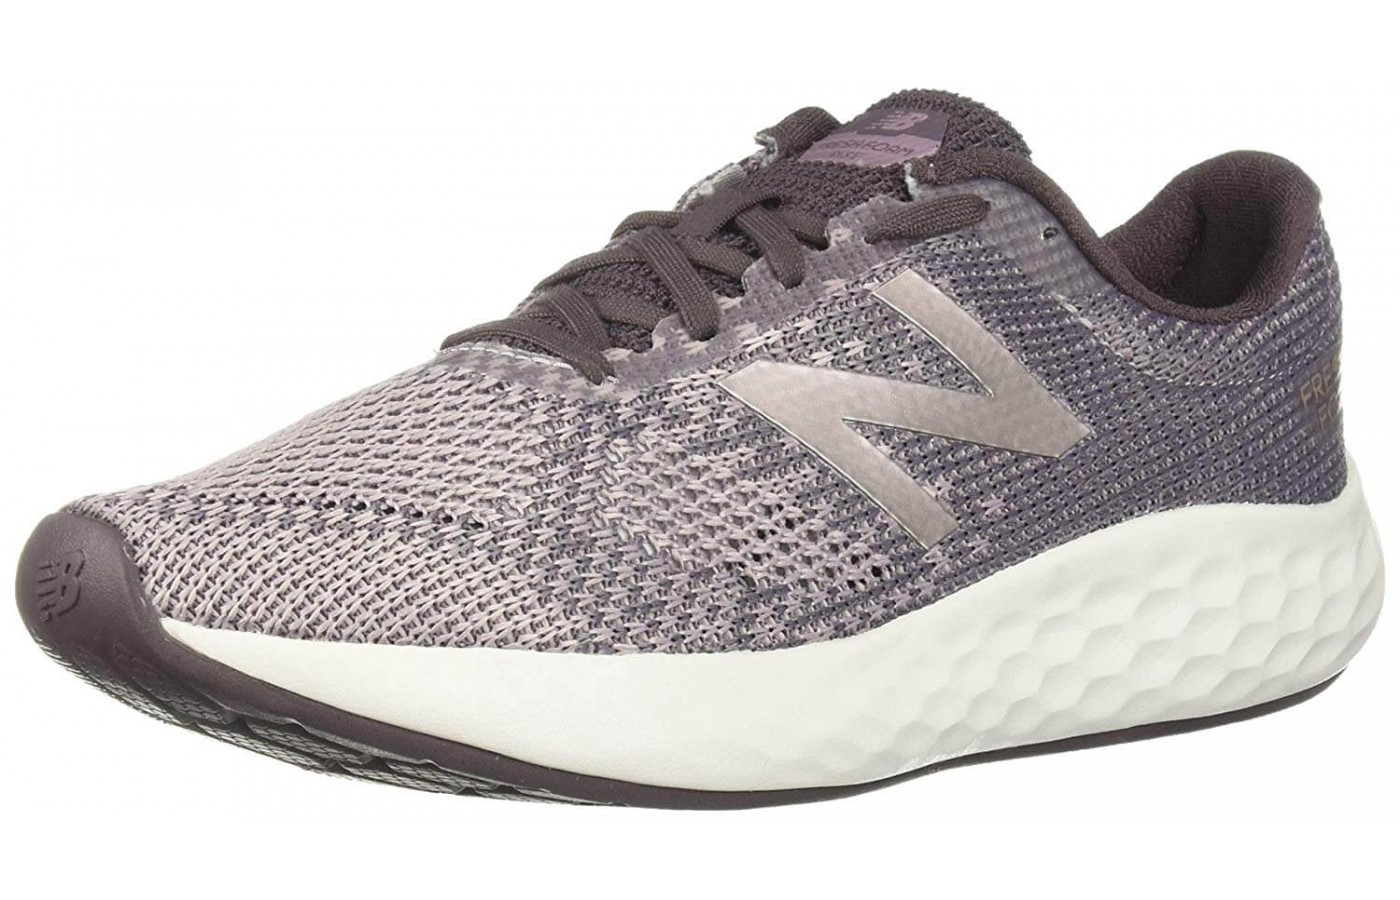 edafca4834 New Balance Rise V1 Reviewed for Performance in 2019 | WalkJogRun